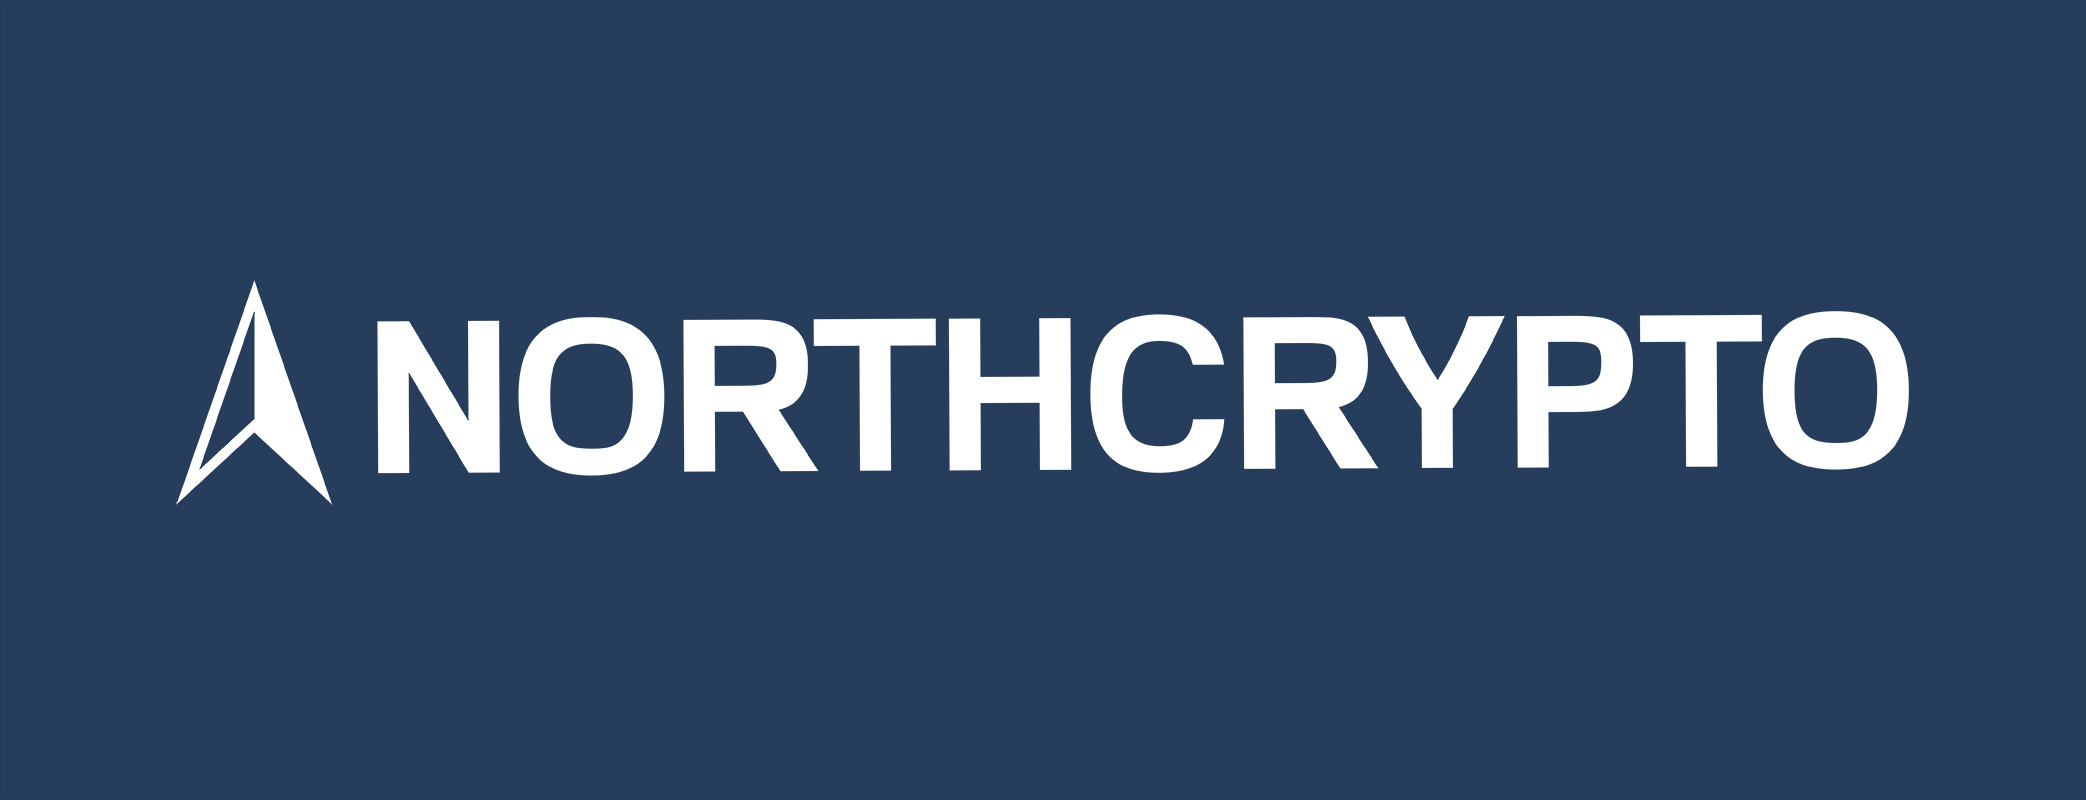 Referral program has been published - earn by recommending Northcrypto